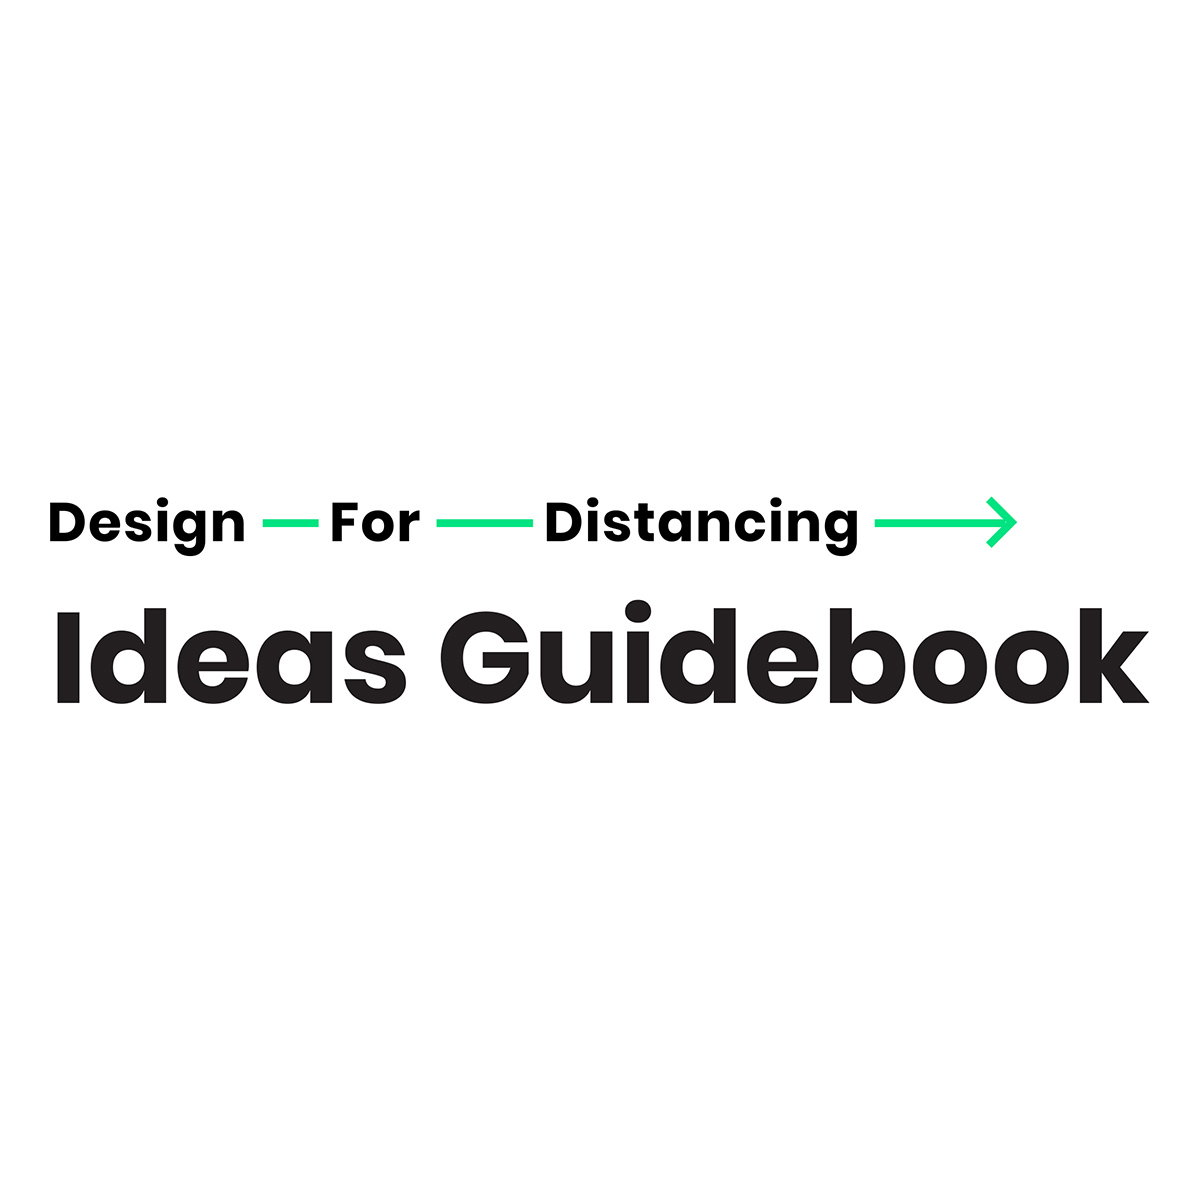 City of Baltimore Publishes 'Design for Distancing - Ideas Guidebook'